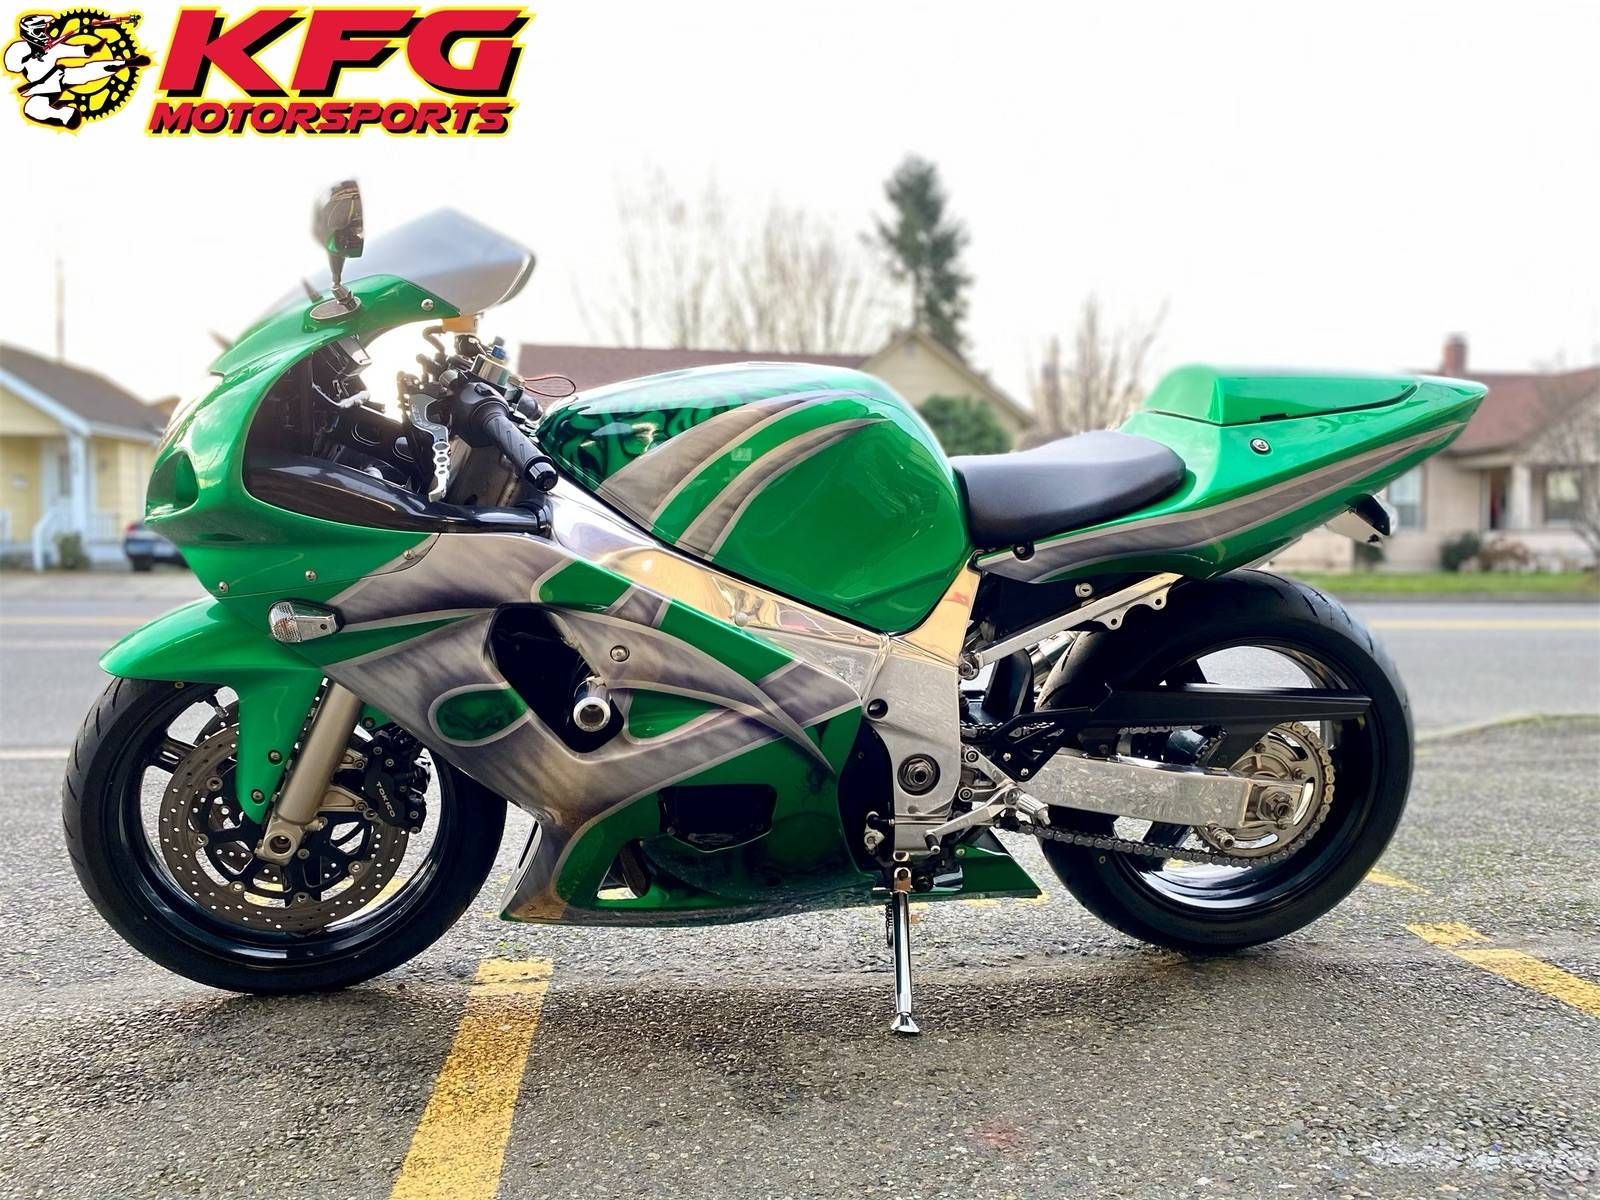 2003 Suzuki GSX-R600 in Auburn, Washington - Photo 2